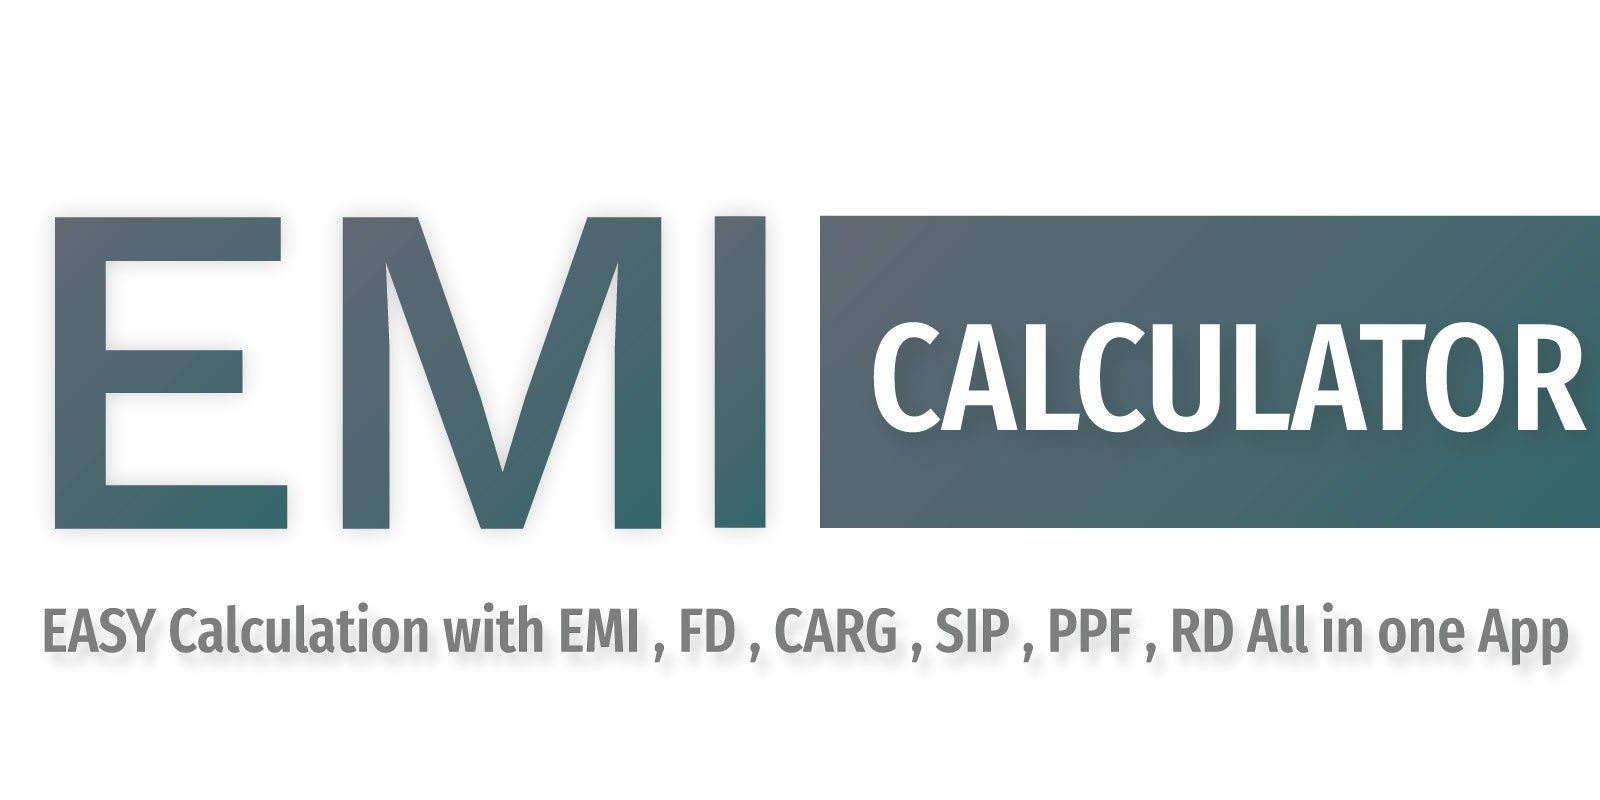 Emi Calculator - Android App Source Code